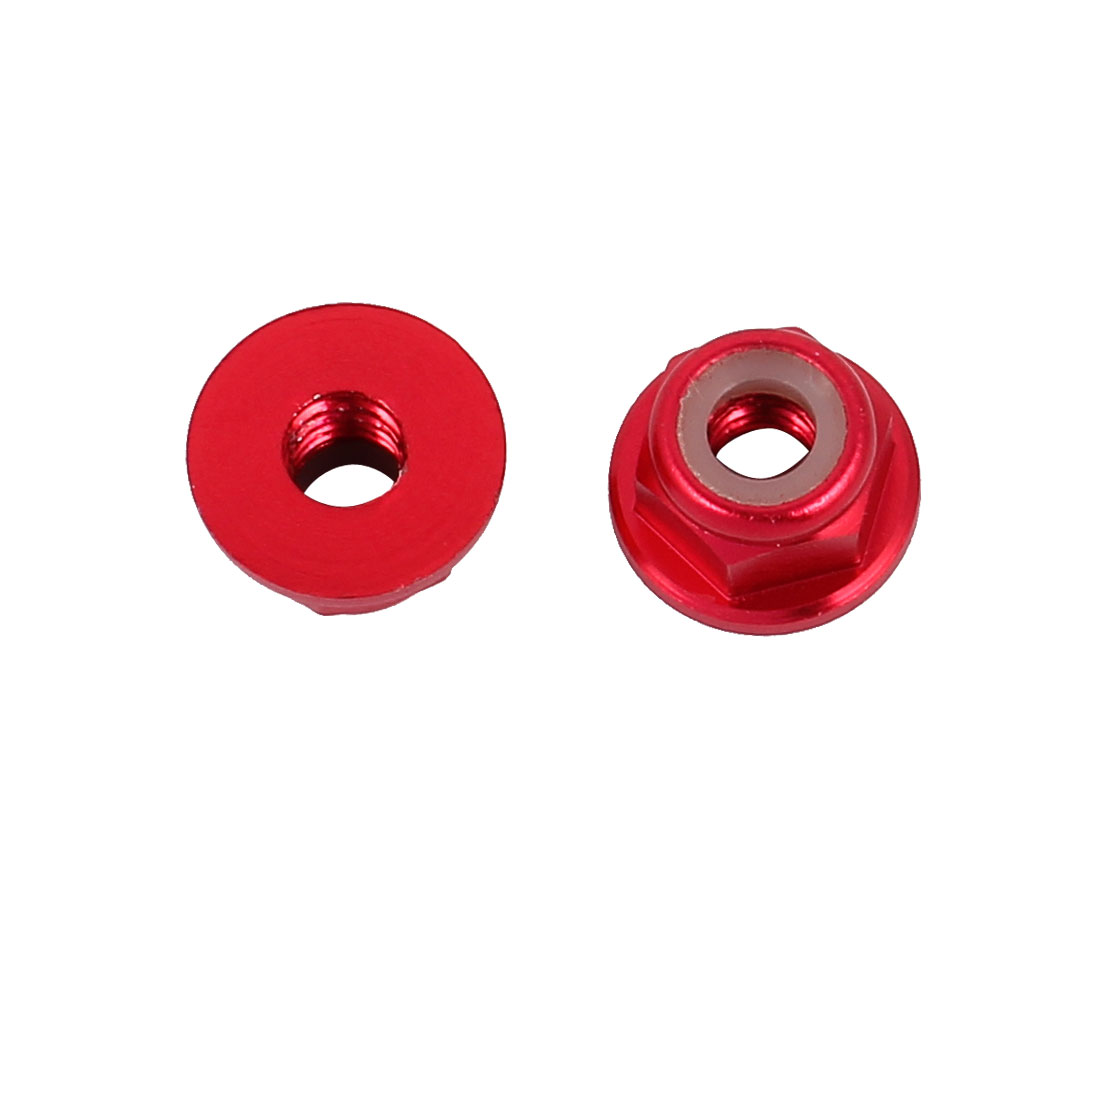 M4 Aluminum Alloy Wine Red Flange Nut For RC Remote Vehicle DIY 2 Pcs